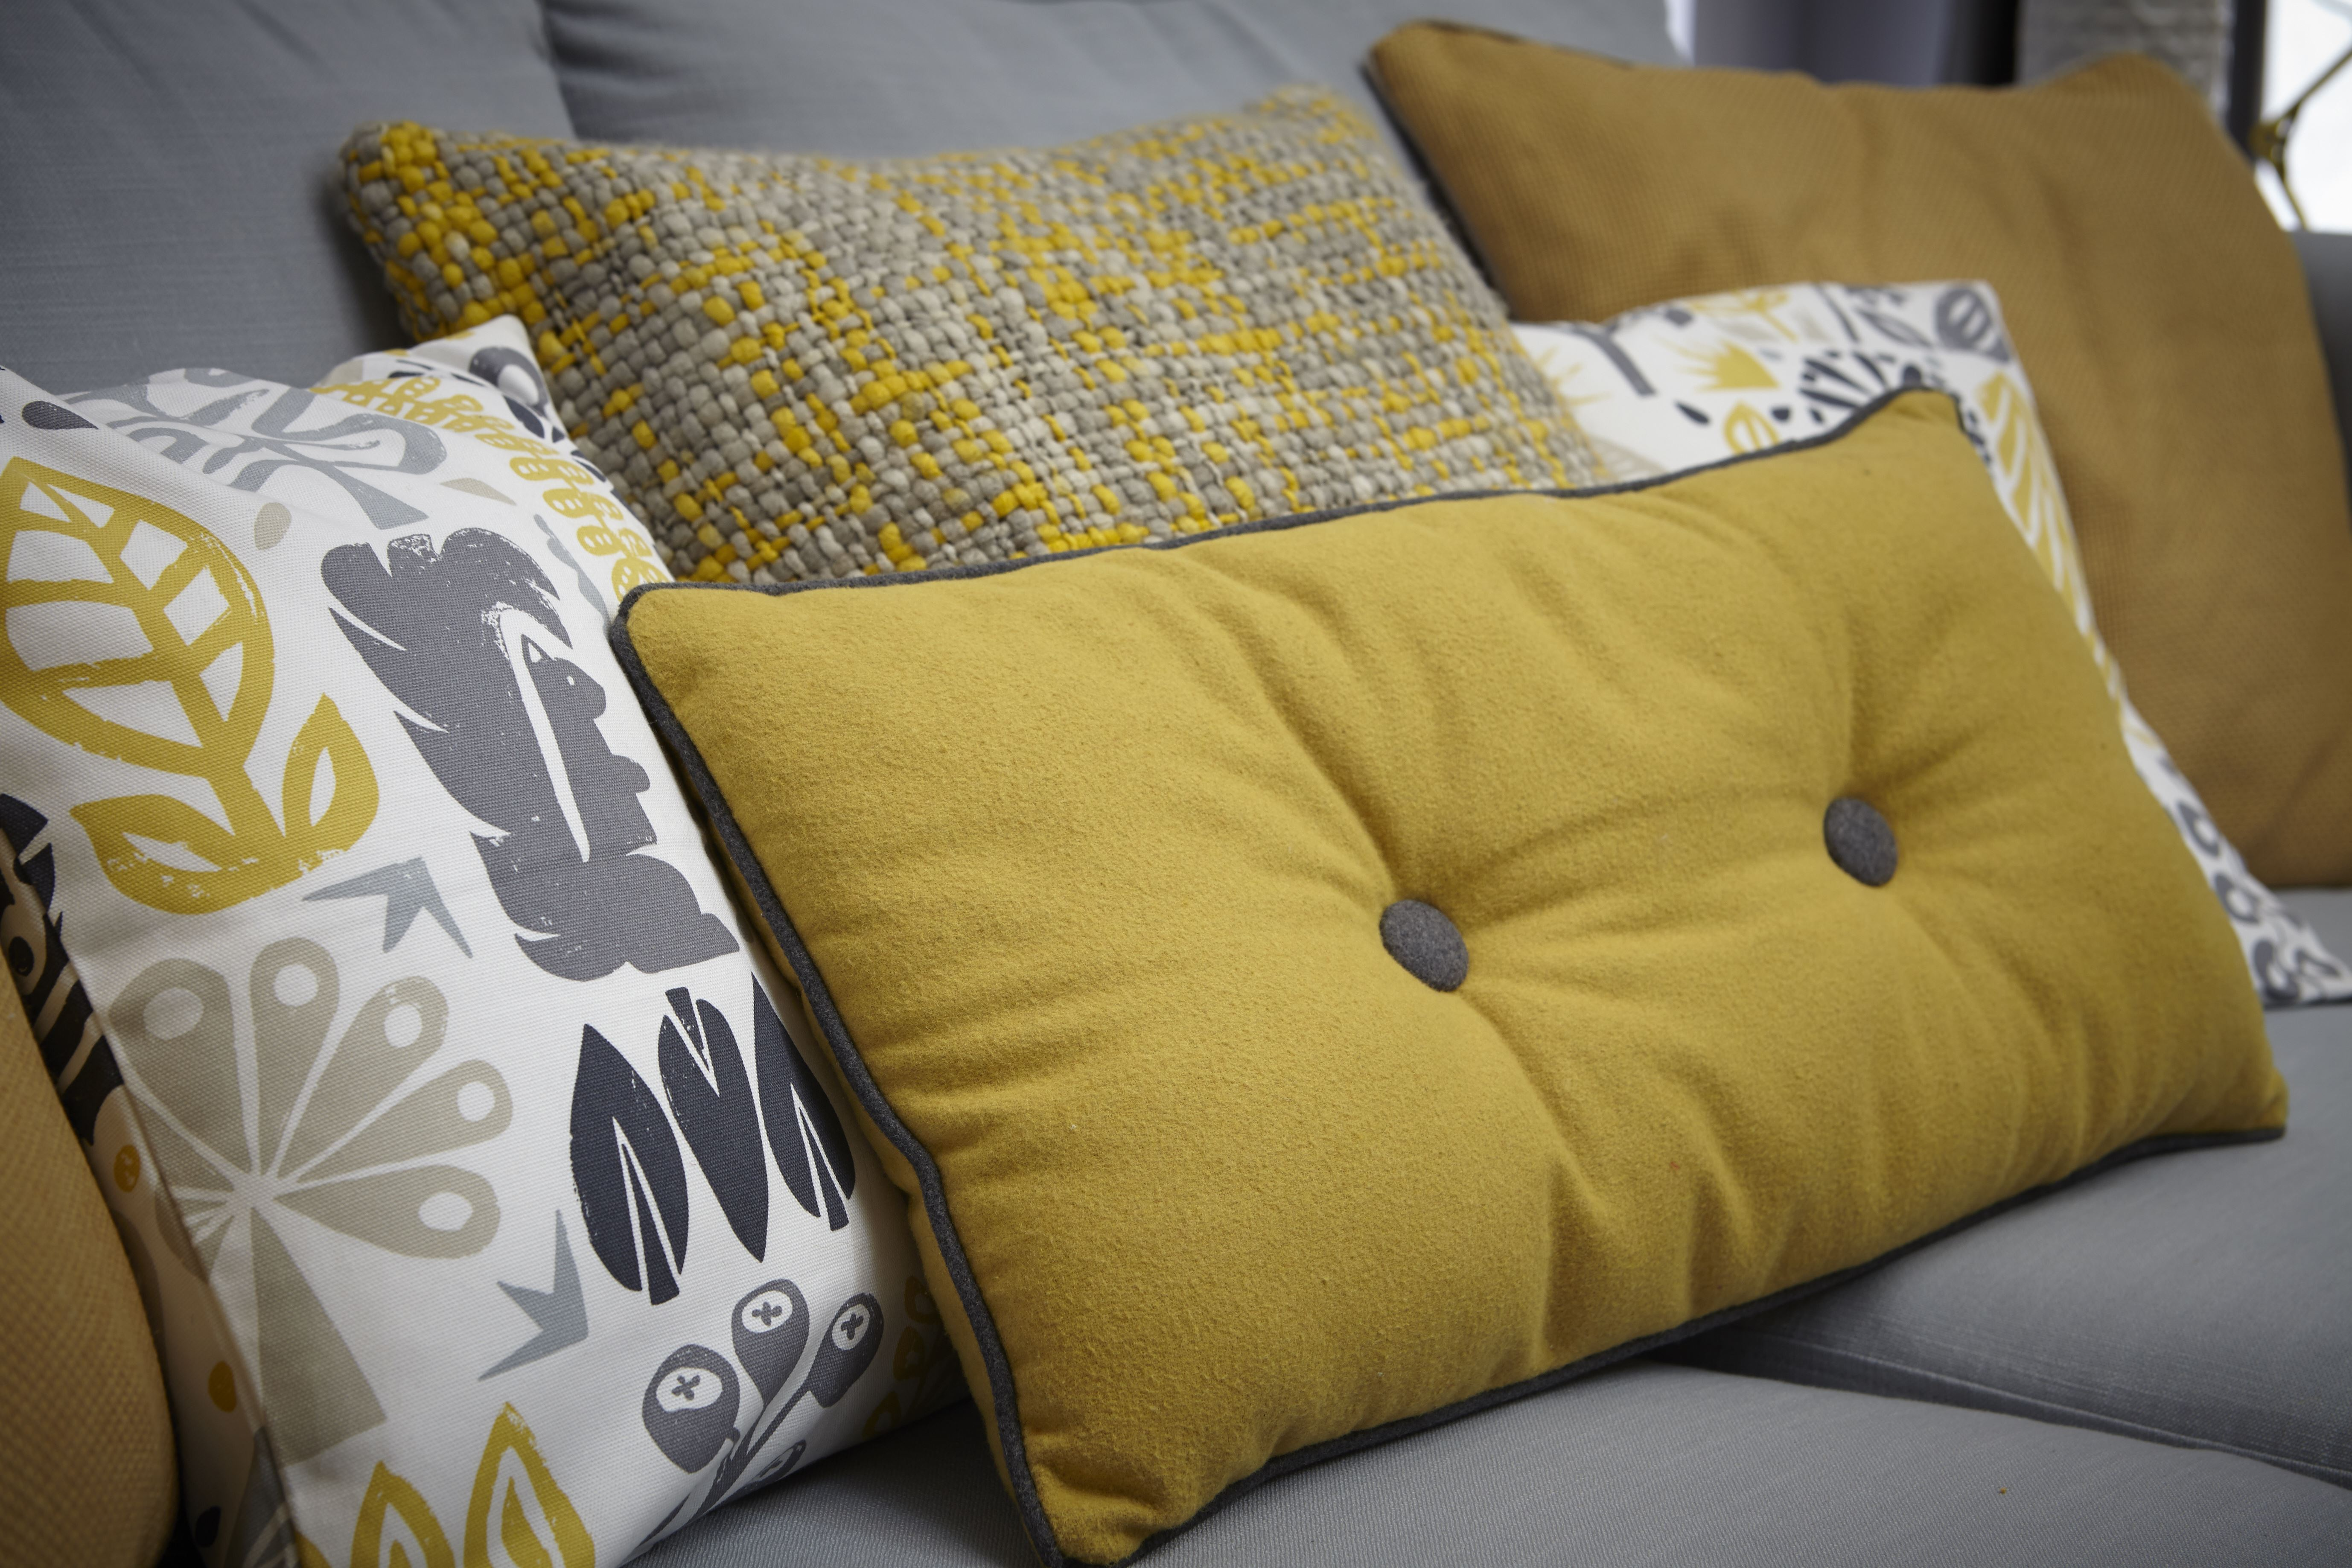 Sofa so good The Treasure Hunter well designed  : frenchconnection2 4858 cushion detail low res from thetreasurehunteruk.com size 5511 x 3674 jpeg 1812kB